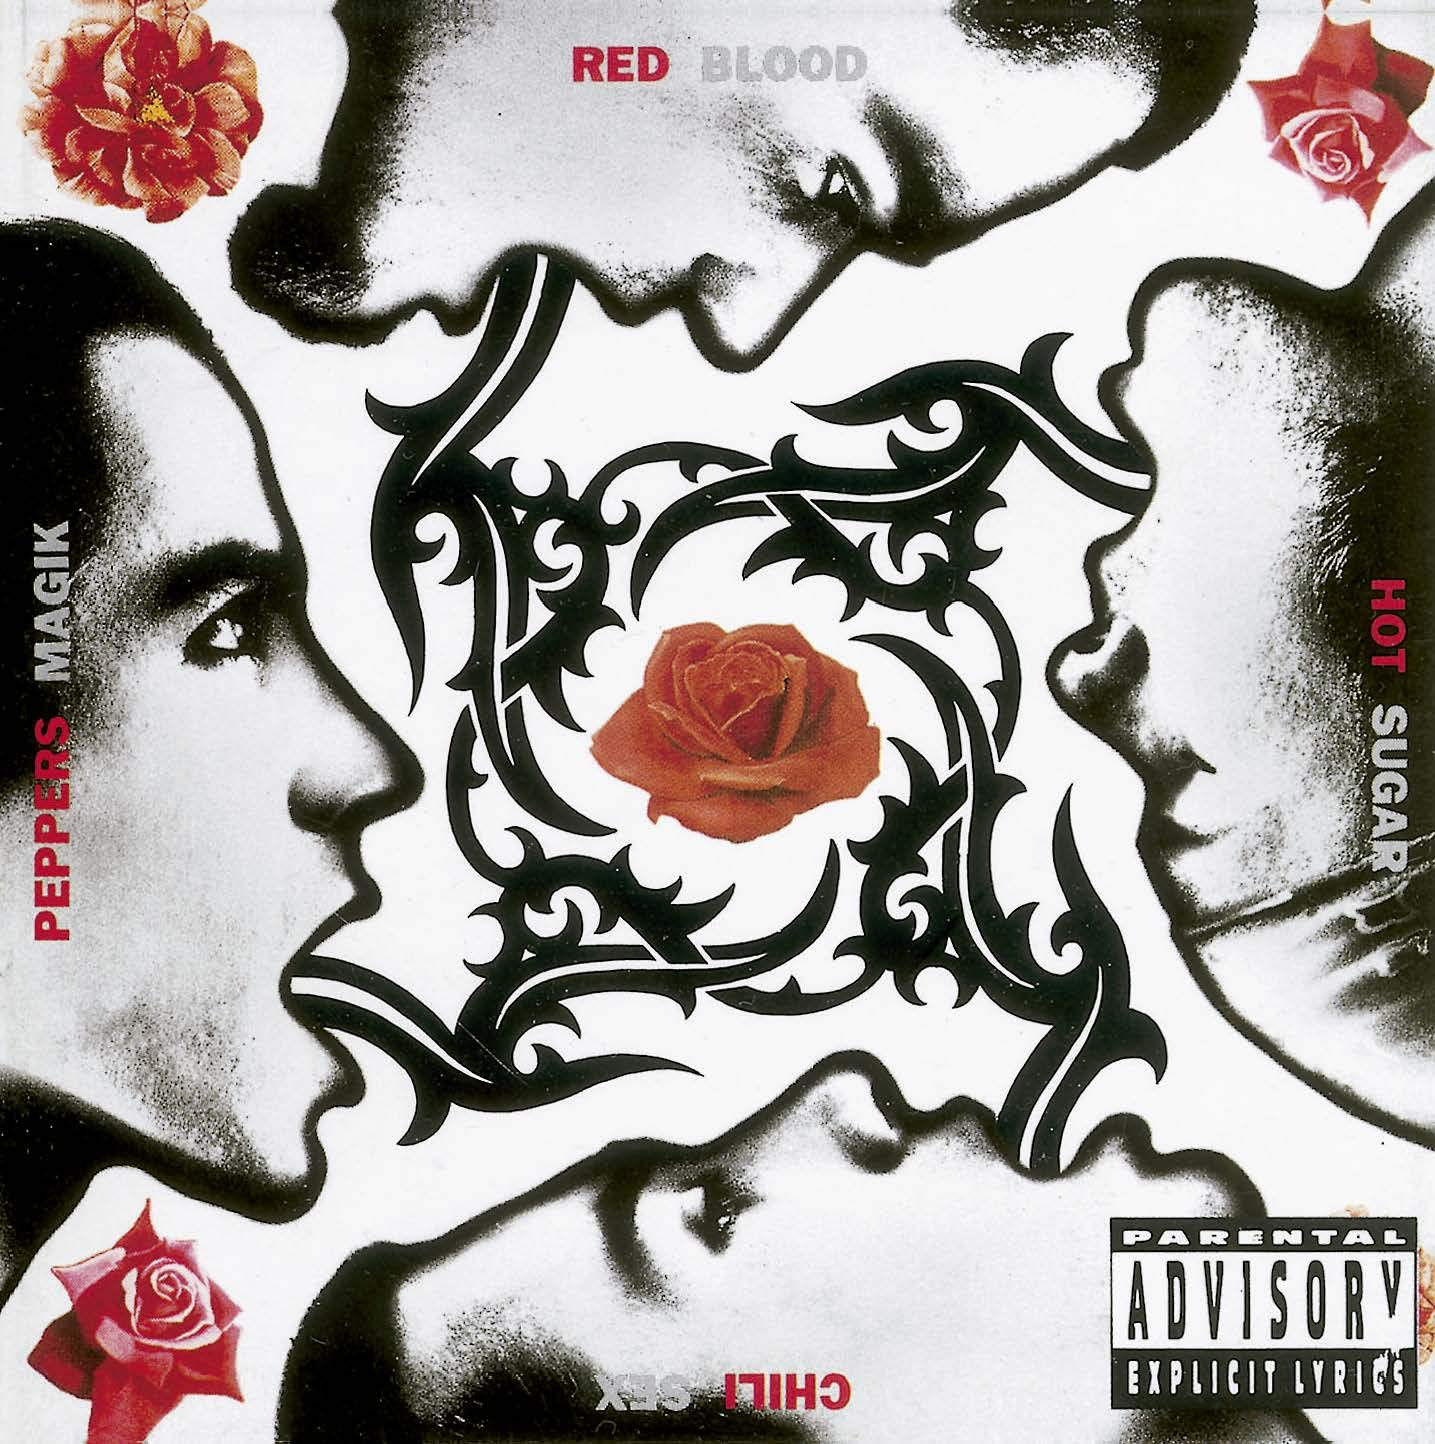 """""""Behind The Sun"""" was an example of the band's instincts being right. Here, Kiedis' instincts were way off. Believe it not, Kiedis didn't want to show the rest of the band his lyrics to """"Under The Bridge,"""" as he didn't feel it was appropriate for a Red Hot Chili Peppers song. Thankfully, producer Rick Rubin convinced him otherwise, and of course, the rest is history. The Hendrixian ballad sees Kiedis dealing with his past drug abuse and trying to transcend it. It's more than just the band's biggest hit (it peaked at #2 on the pop charts): """"I don't ever wanna feel, like I did that day"""" is a mantra for people who don't want to repeat past mistakes."""